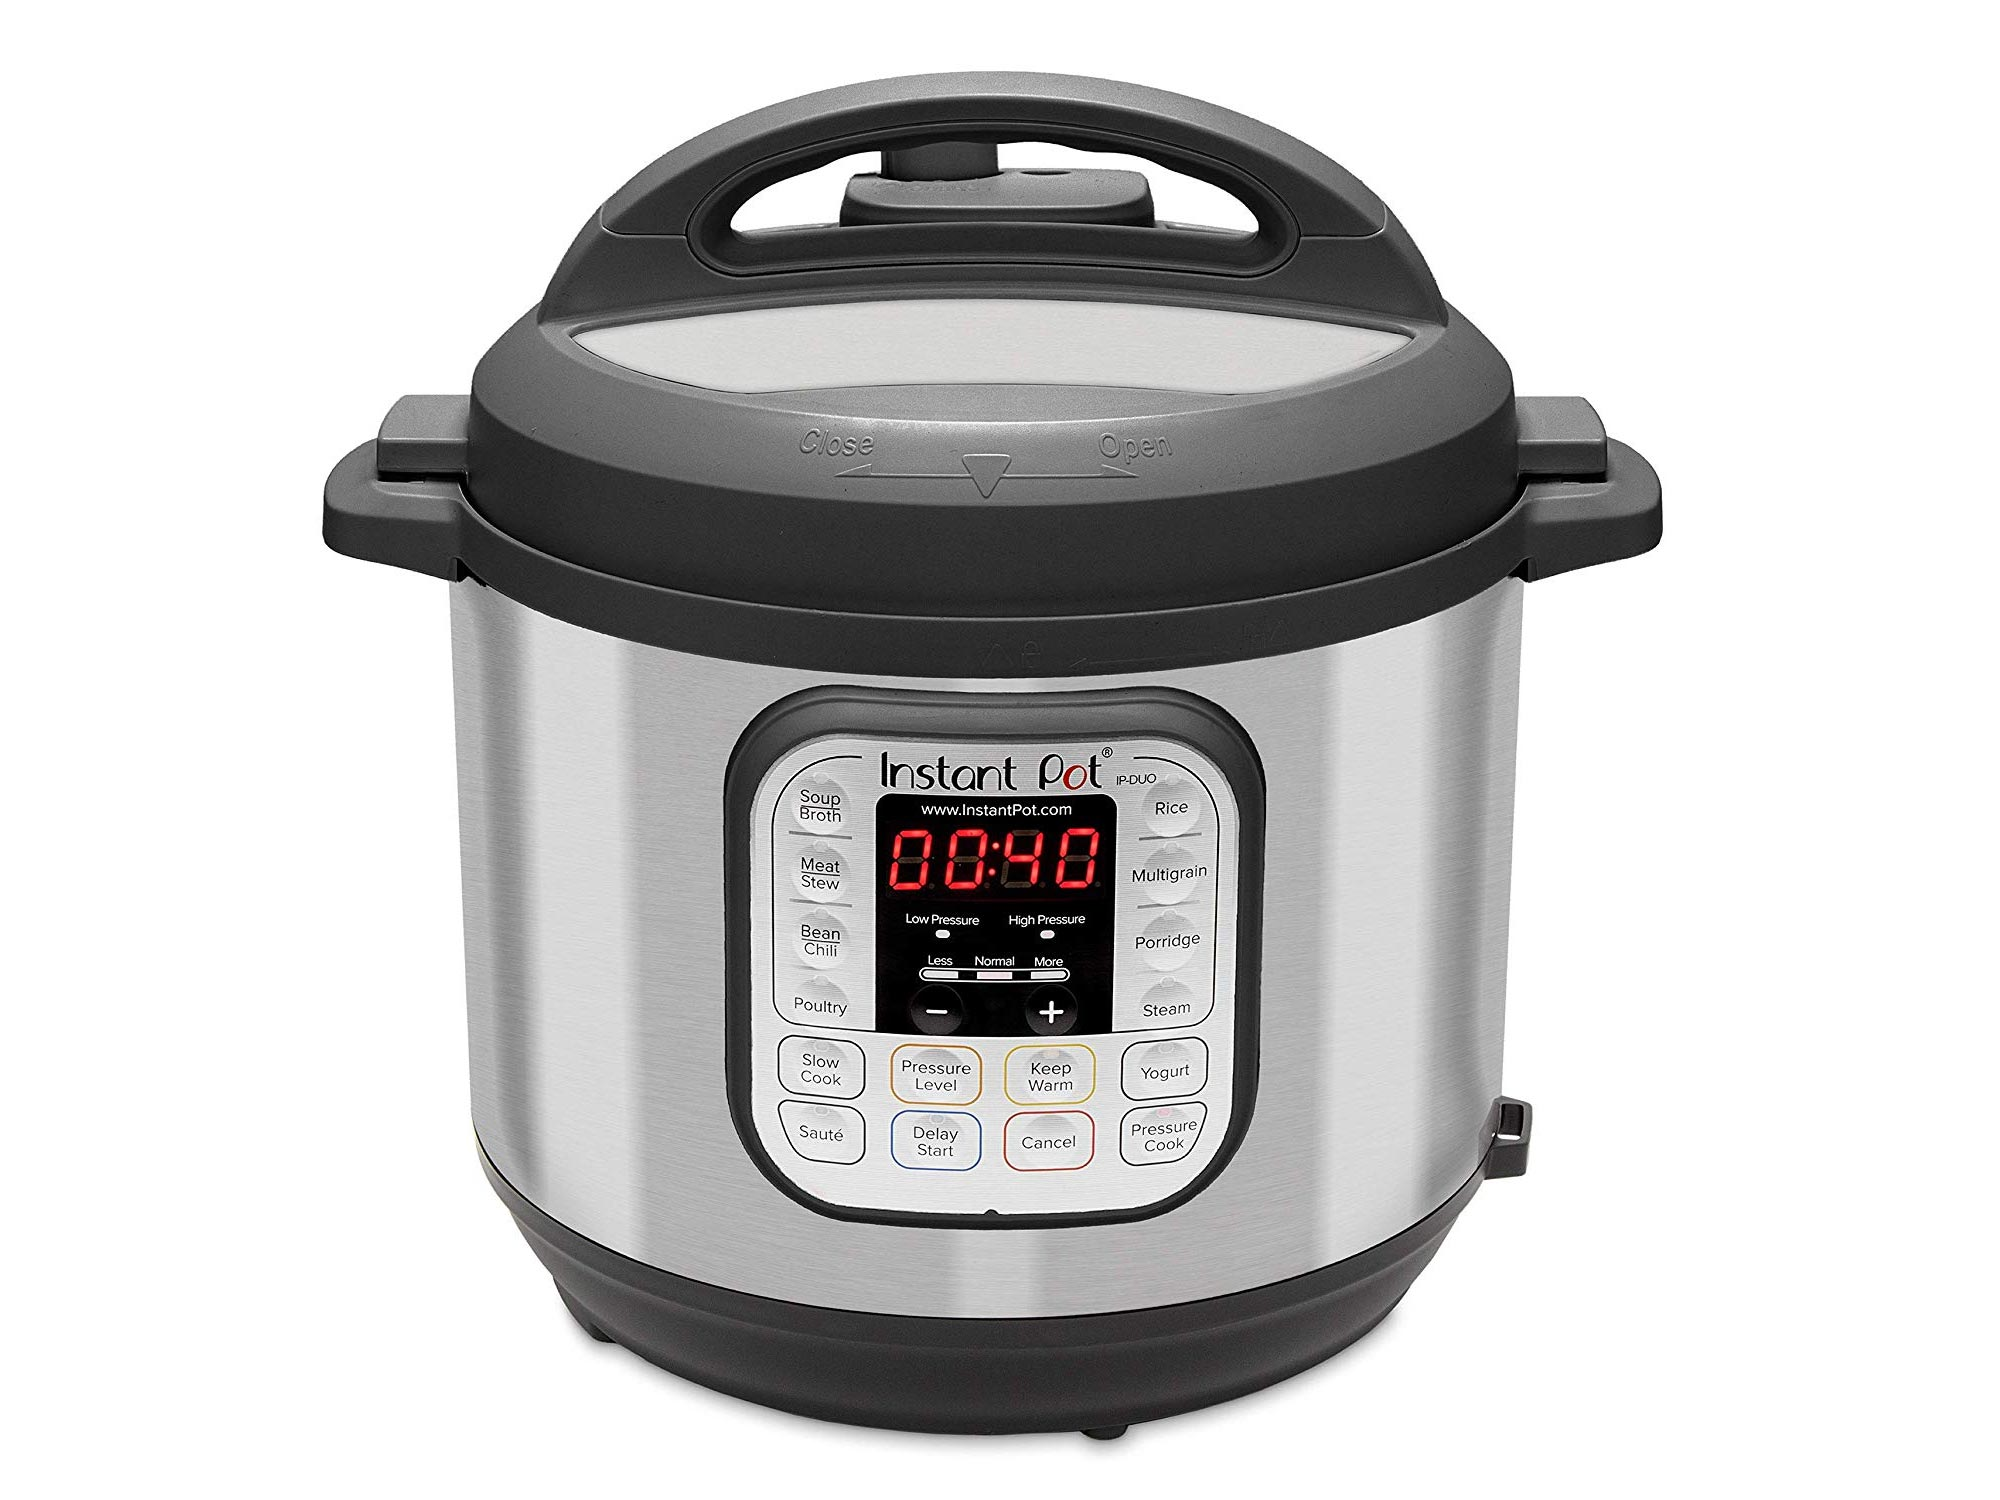 Instant Pot Duo 60 321 Electric Pressure Cooker